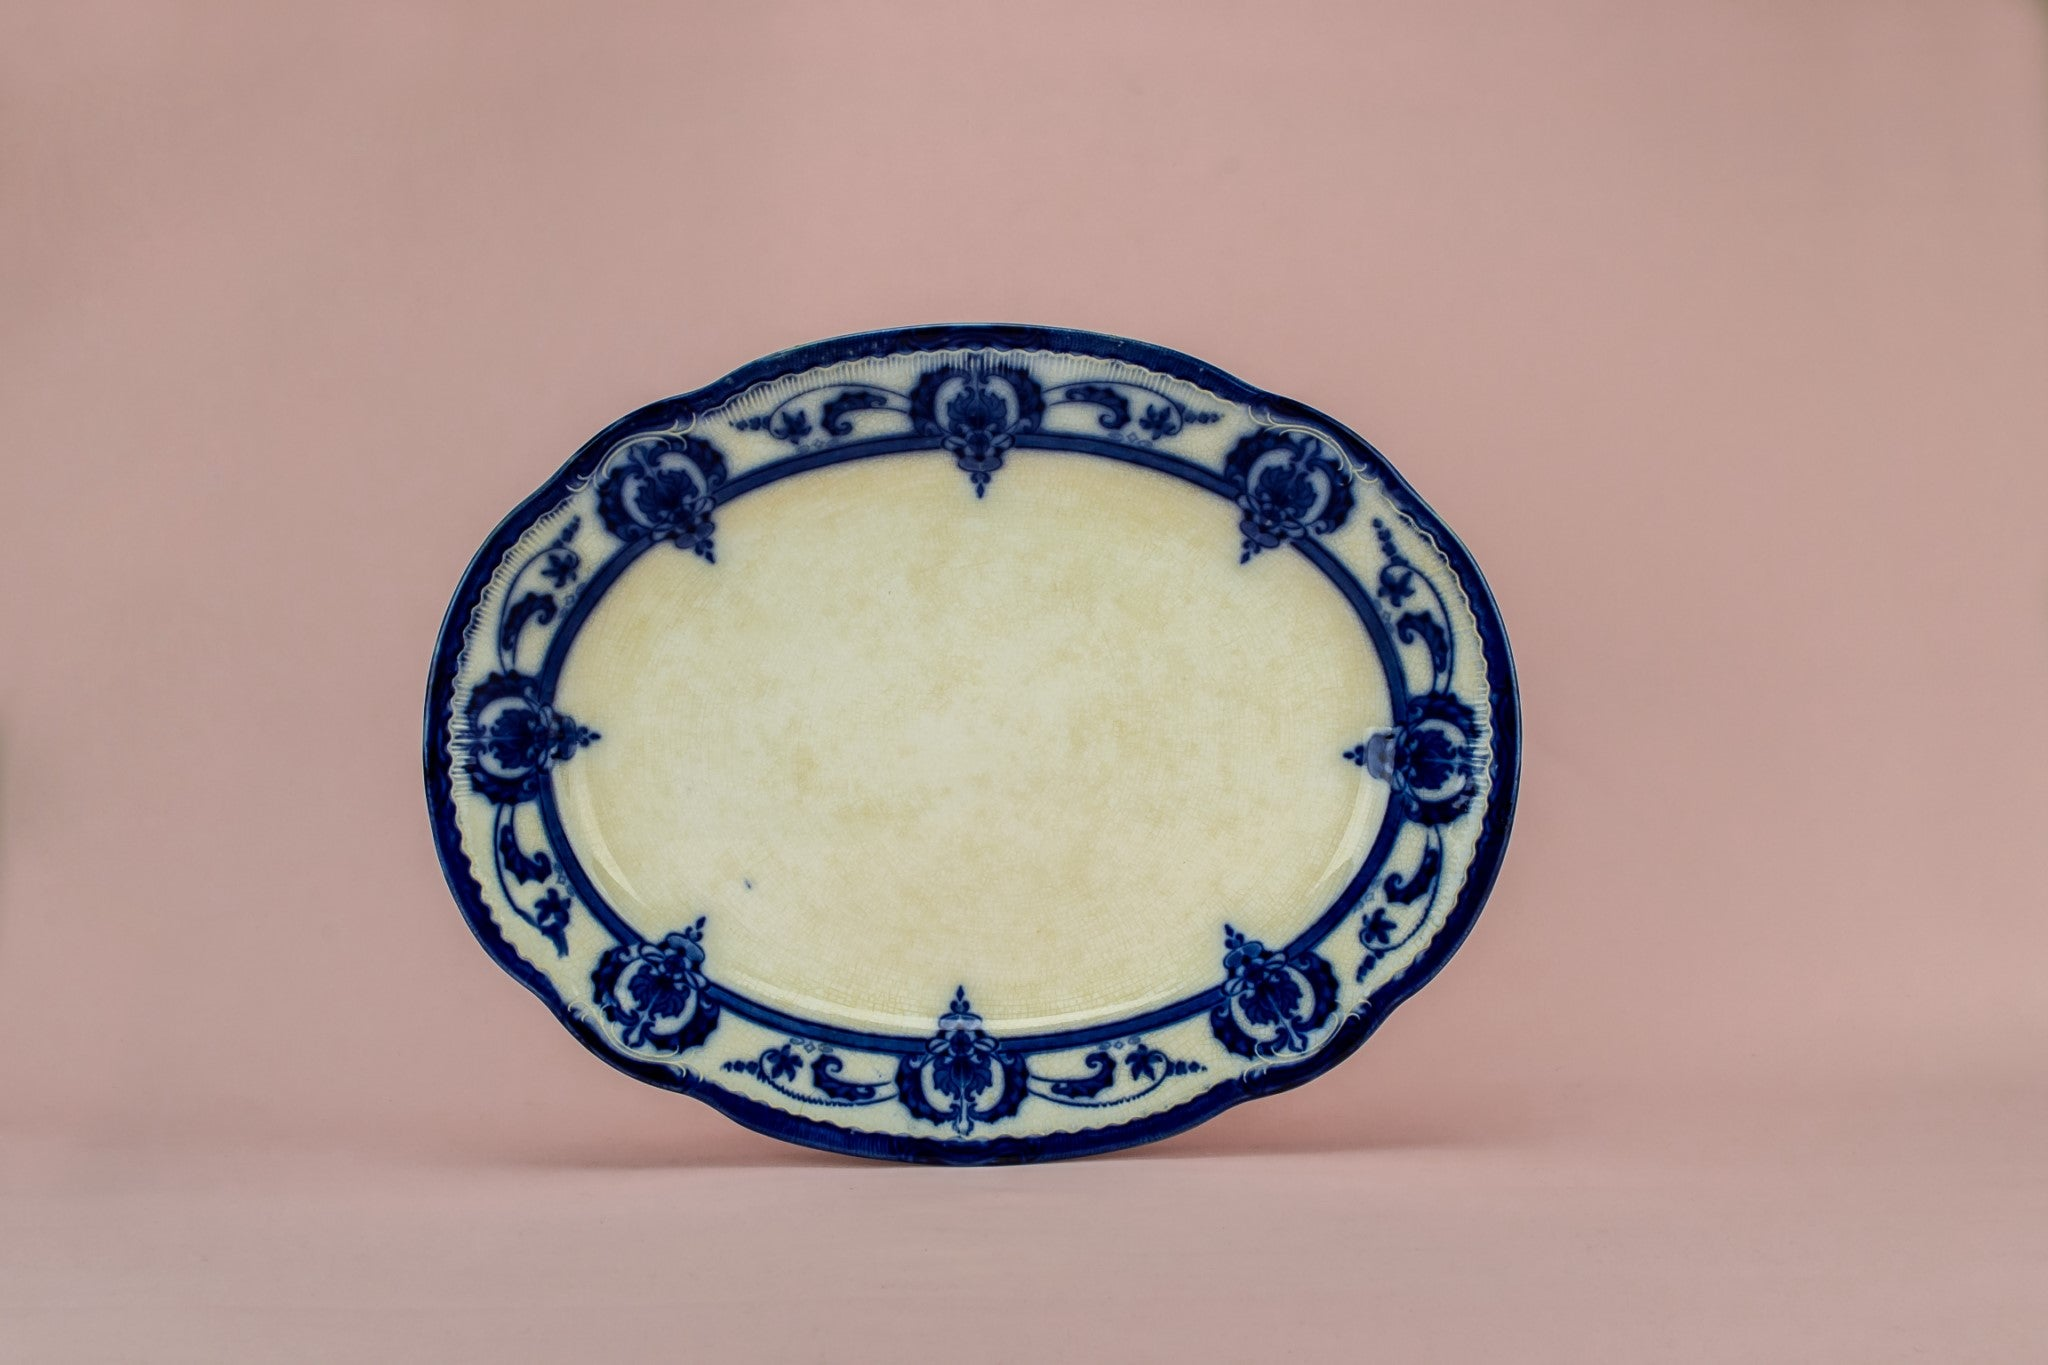 Flow blue serving platter